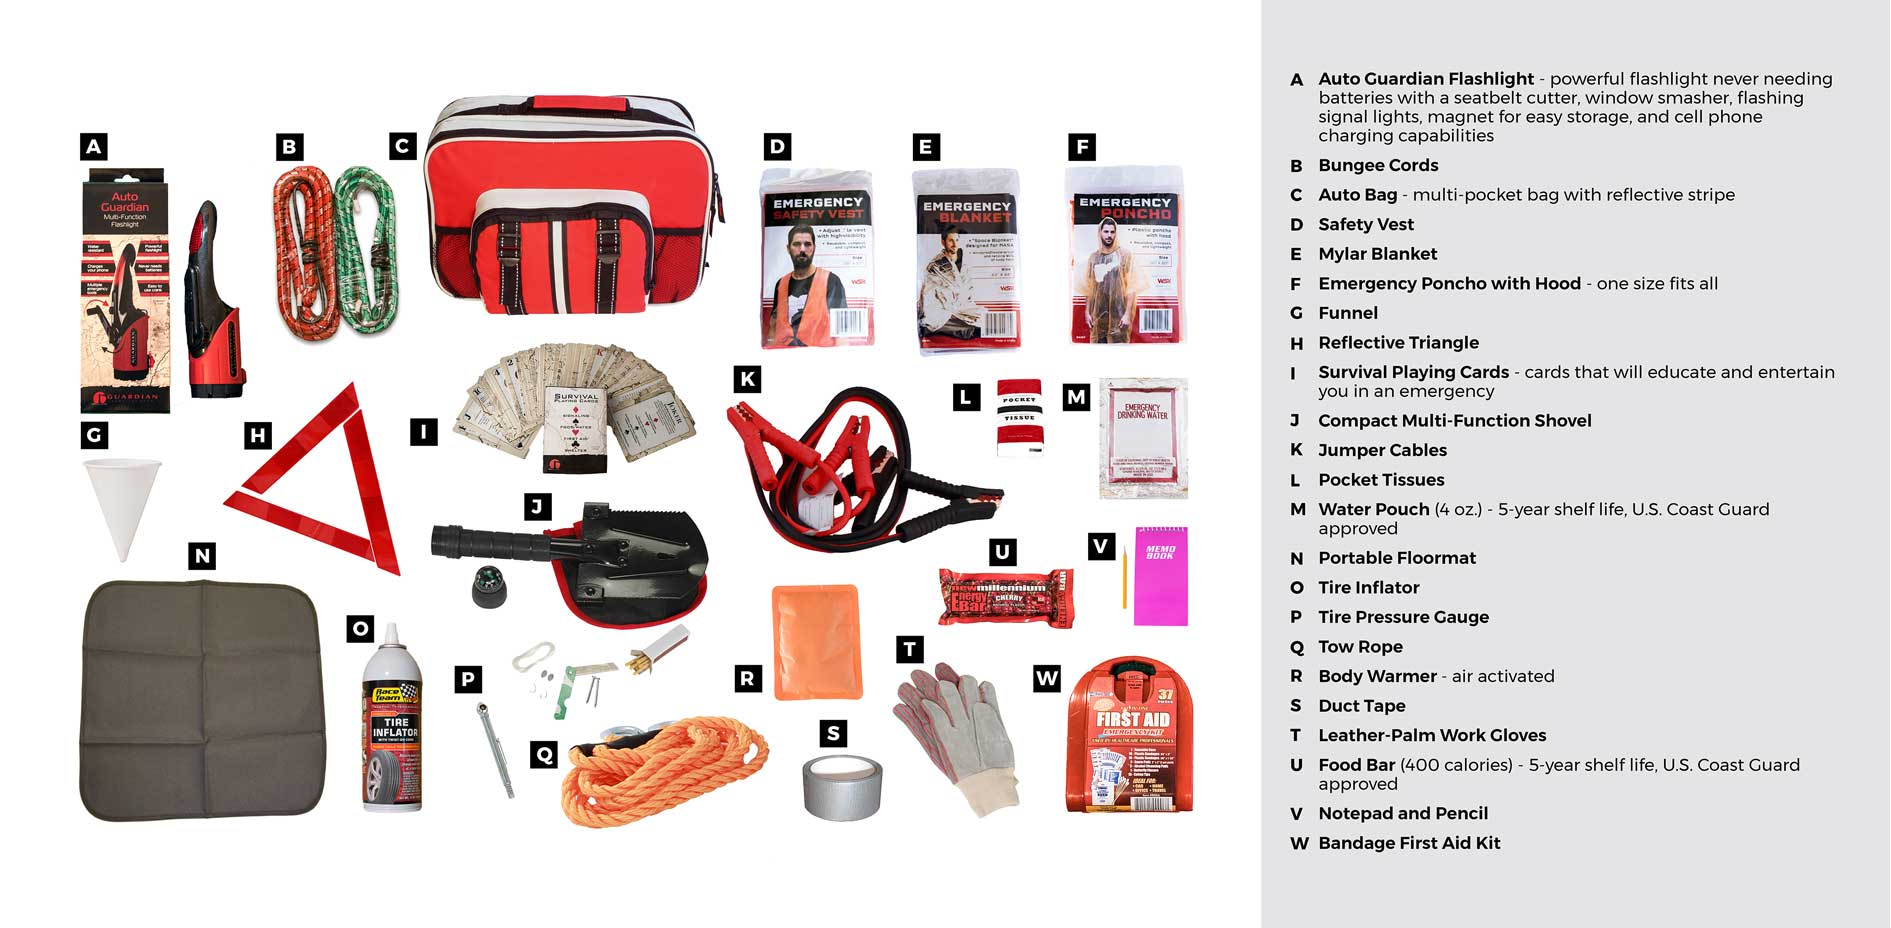 ultimate auto emergency kit